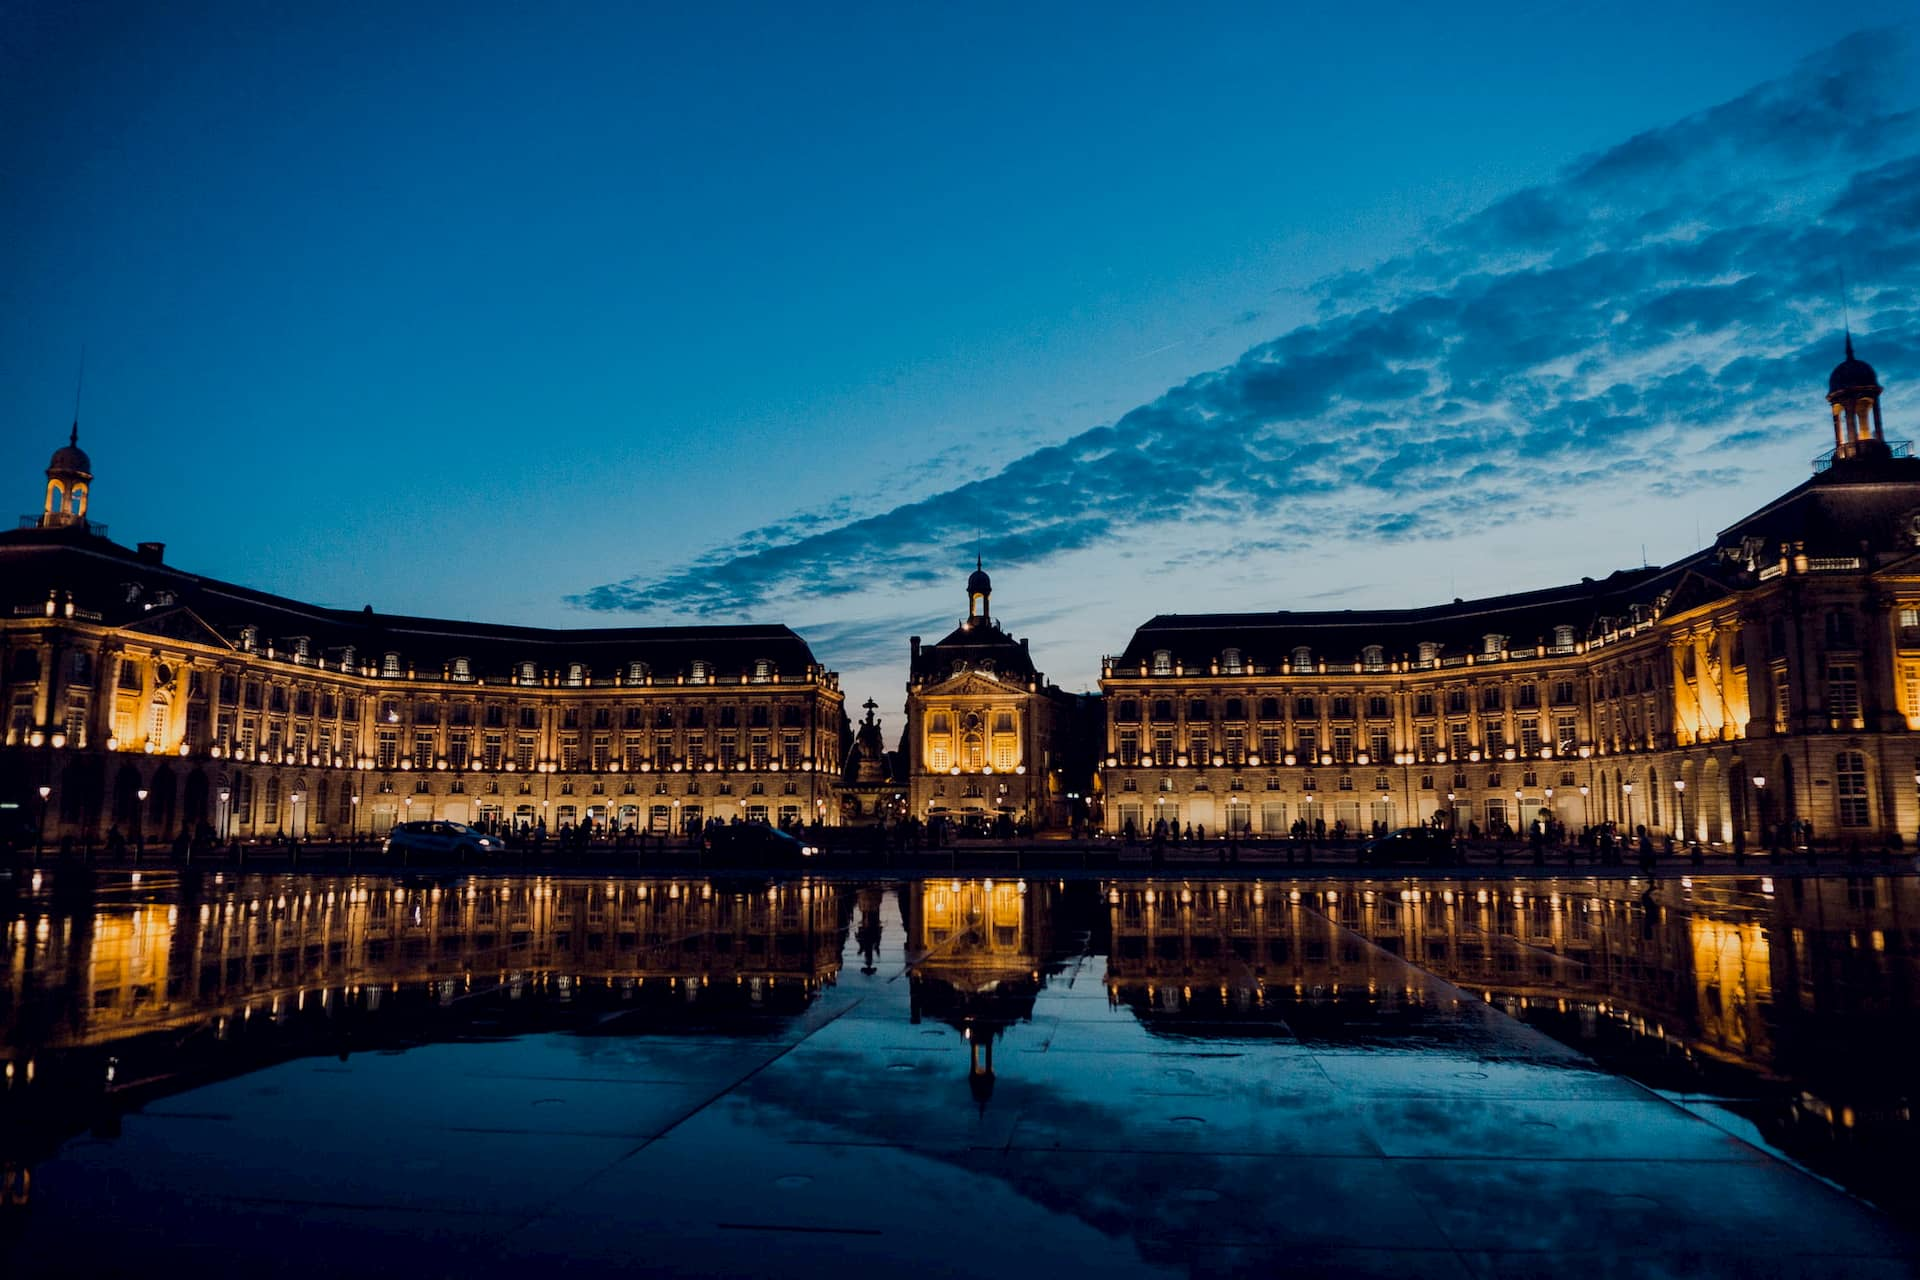 Place de la comédie à Bordeaux - Juan Di Nella on Unsplash